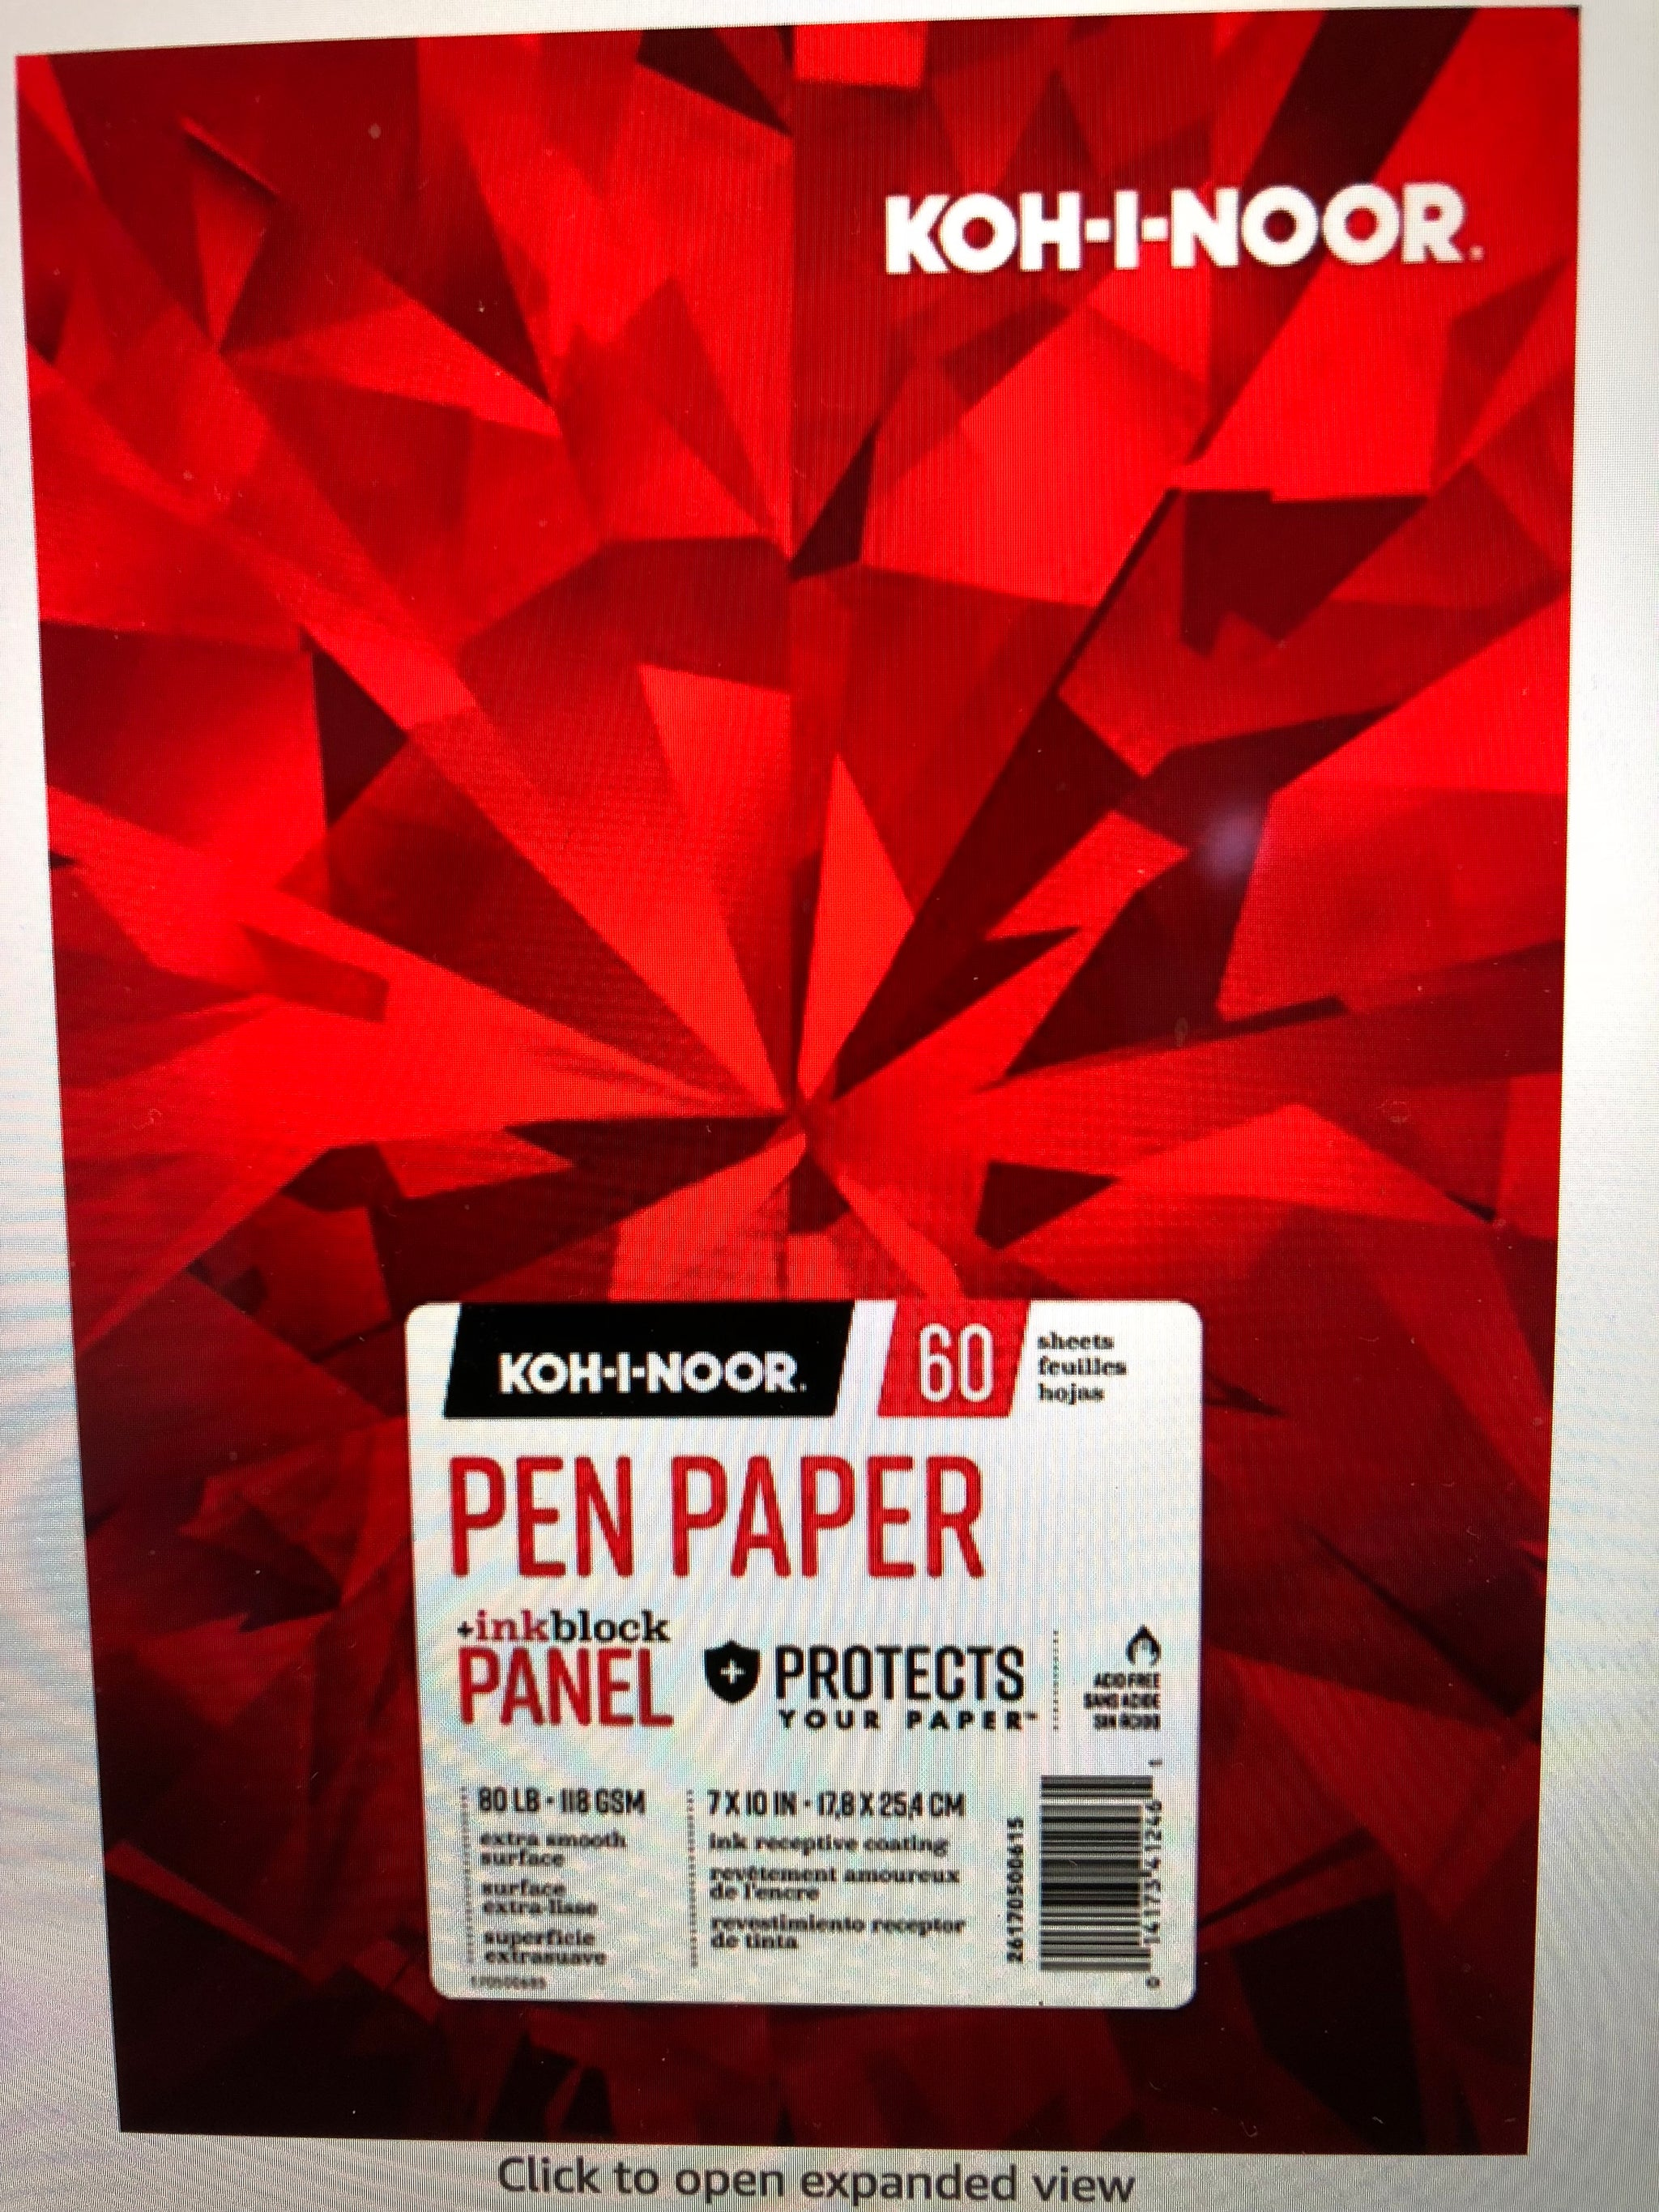 Koh-I-Noor Pen Paper with Ink Block Panel